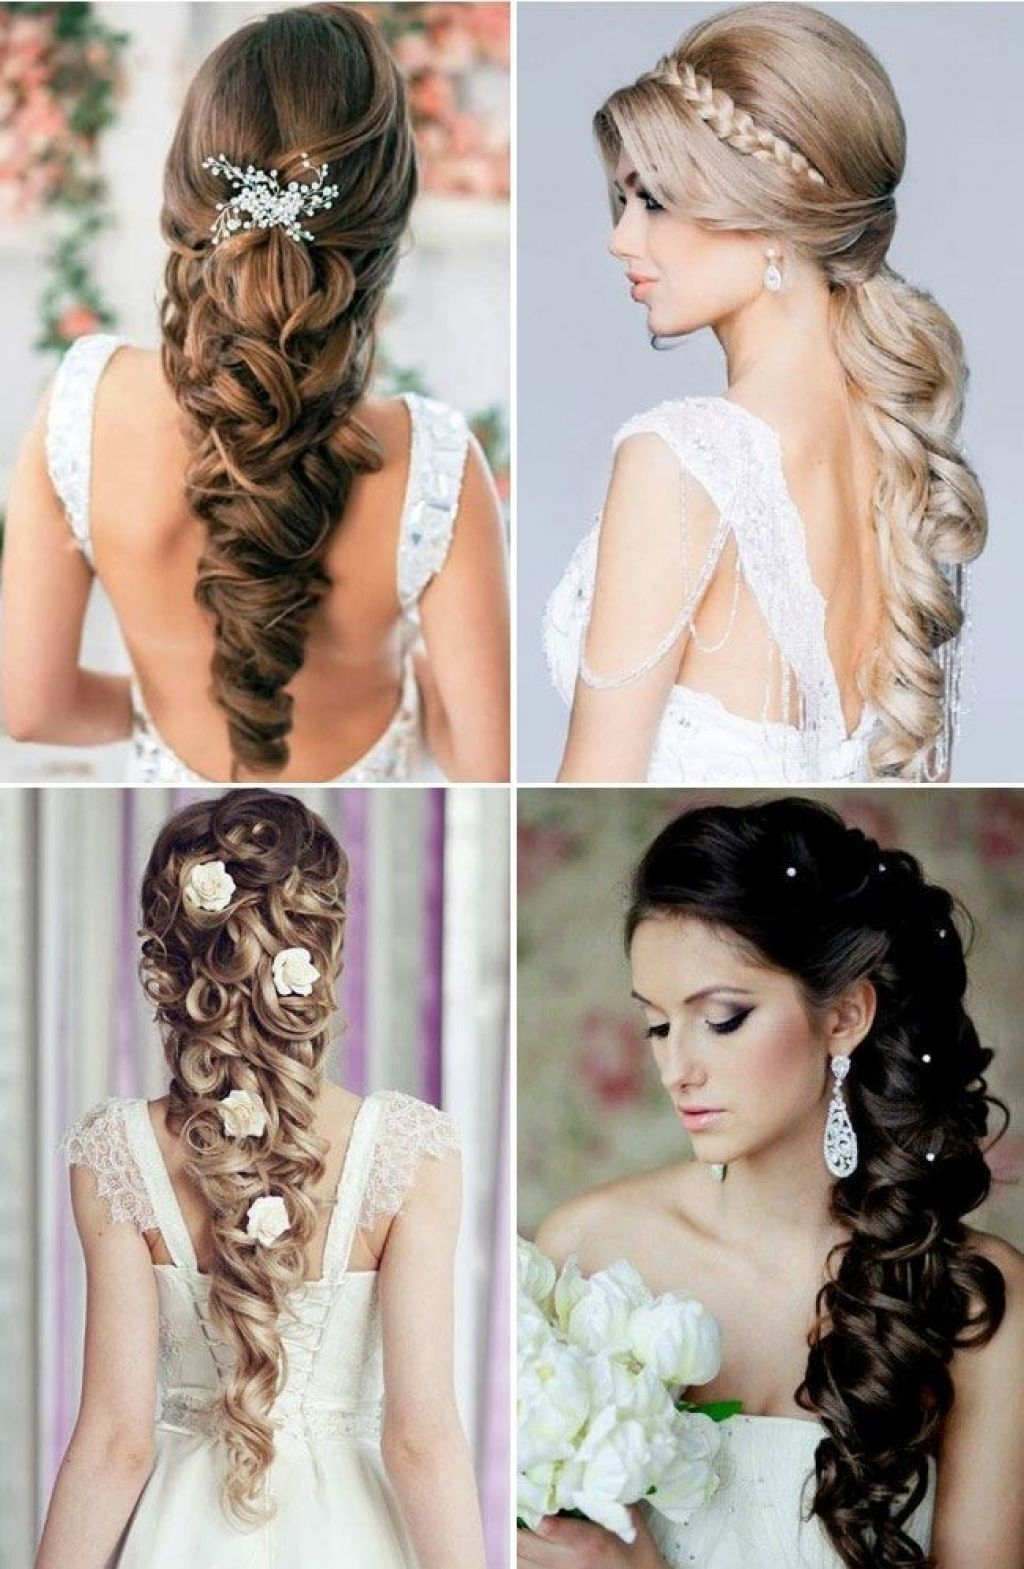 Hairstyles For Long Hair Braids Prom Latest Fancy Formal Stock Within Wedding Hair Updo Hairstyles (View 9 of 15)